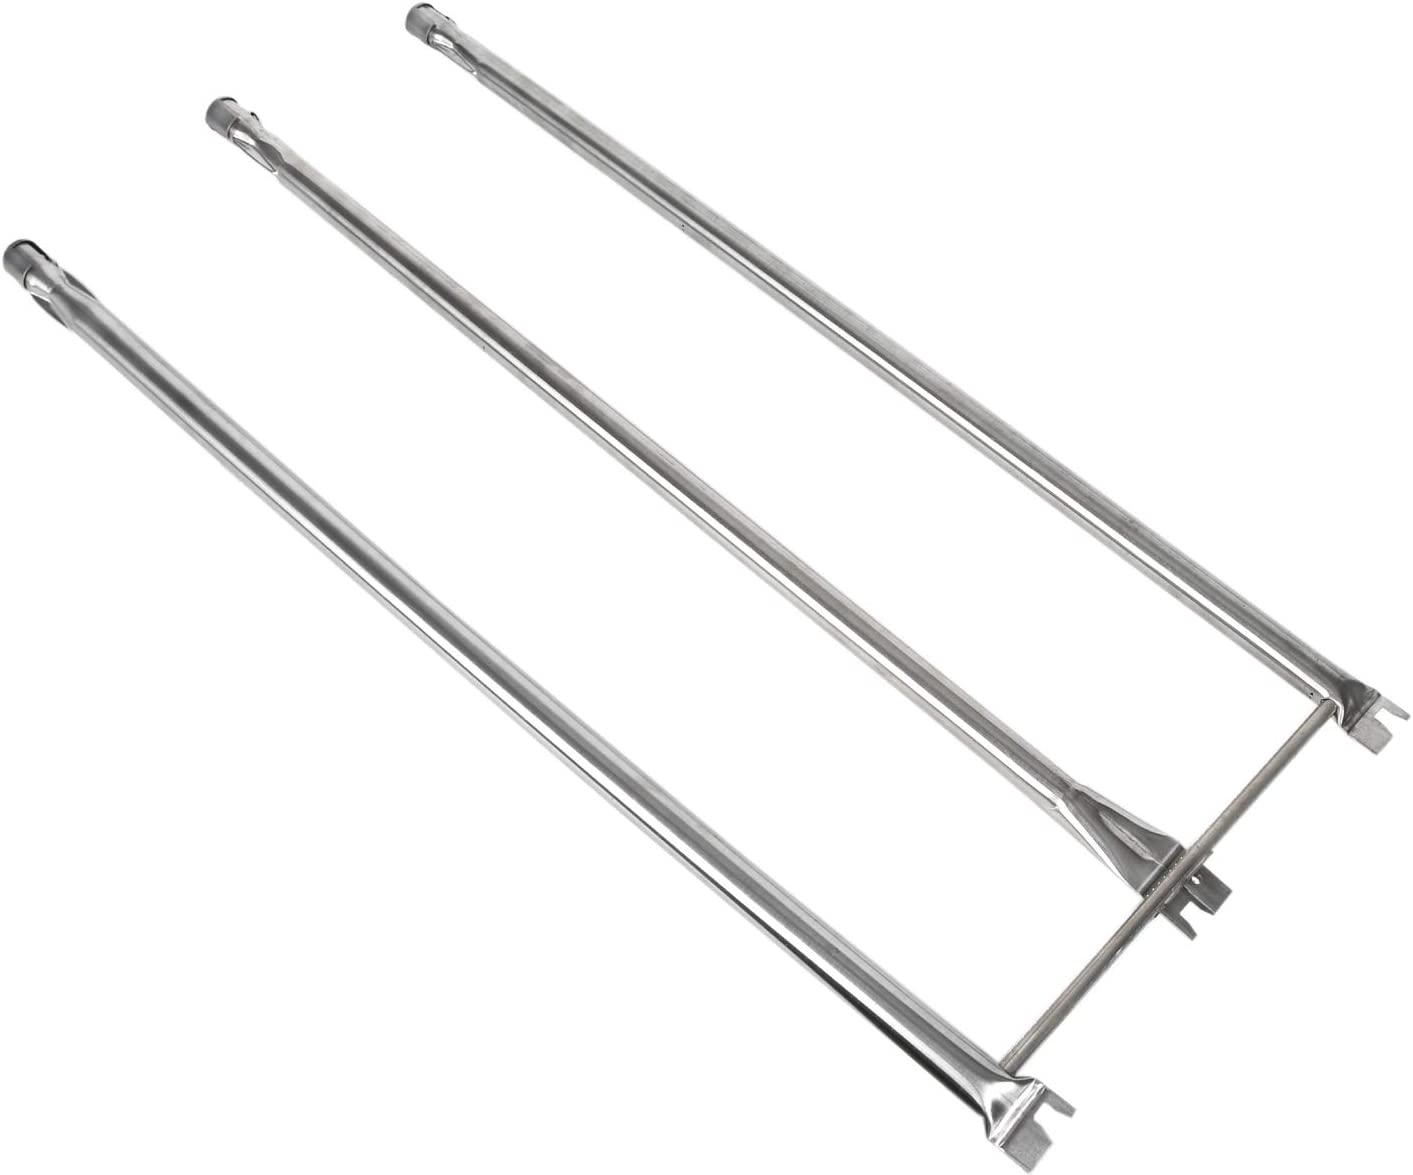 Genesis 300 Series E310 E320 EP310 EP320 S310 S320 2007-2010 with Side Control Knobs Gassaf Burner Tube Set Replacement for Weber 67722 34-1//4 inch 304 Stainless Steel durable Burner